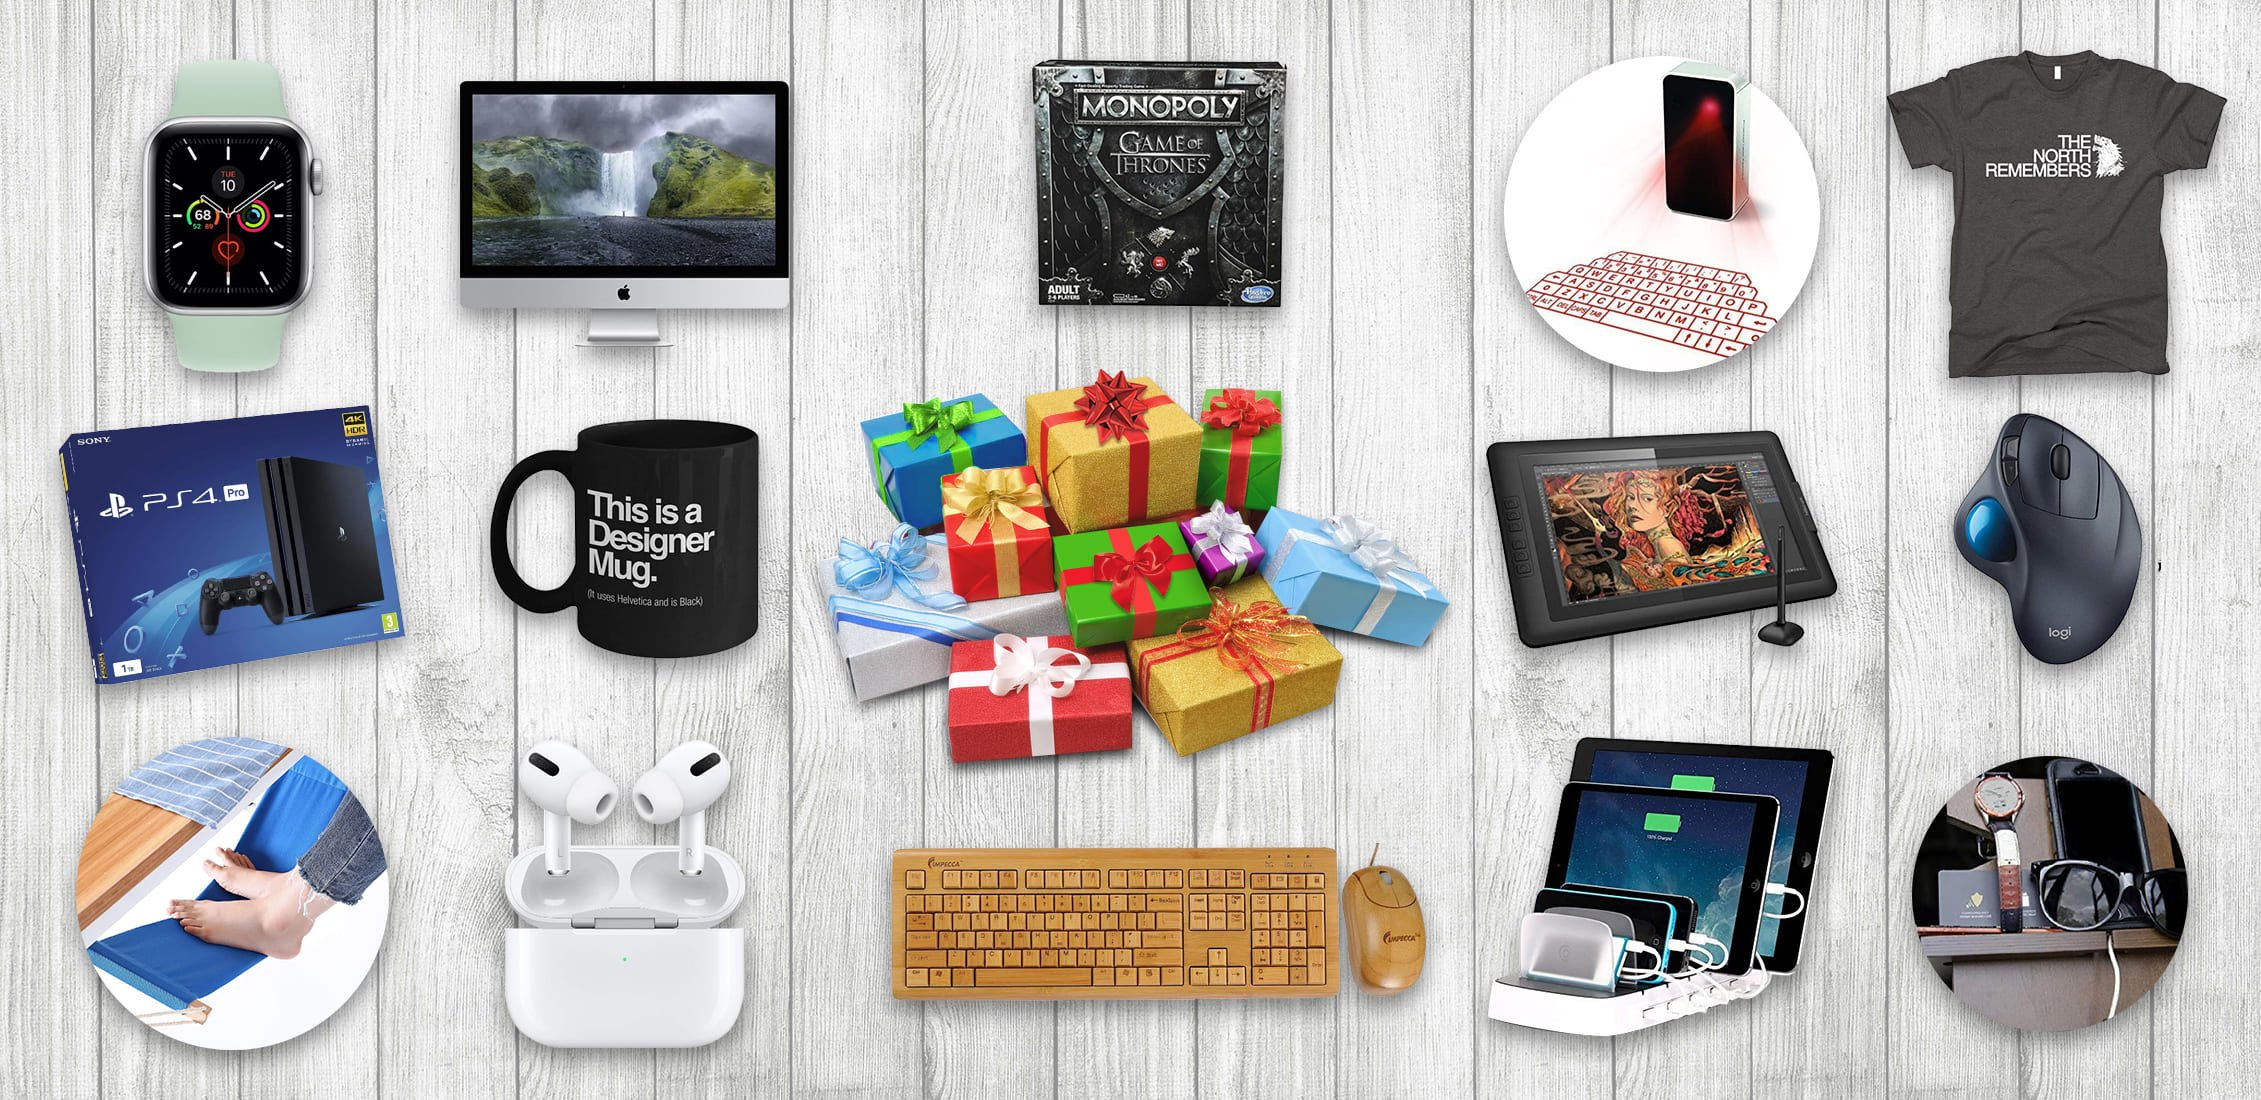 Сool gifts for a graphic designers, which are located on light boards